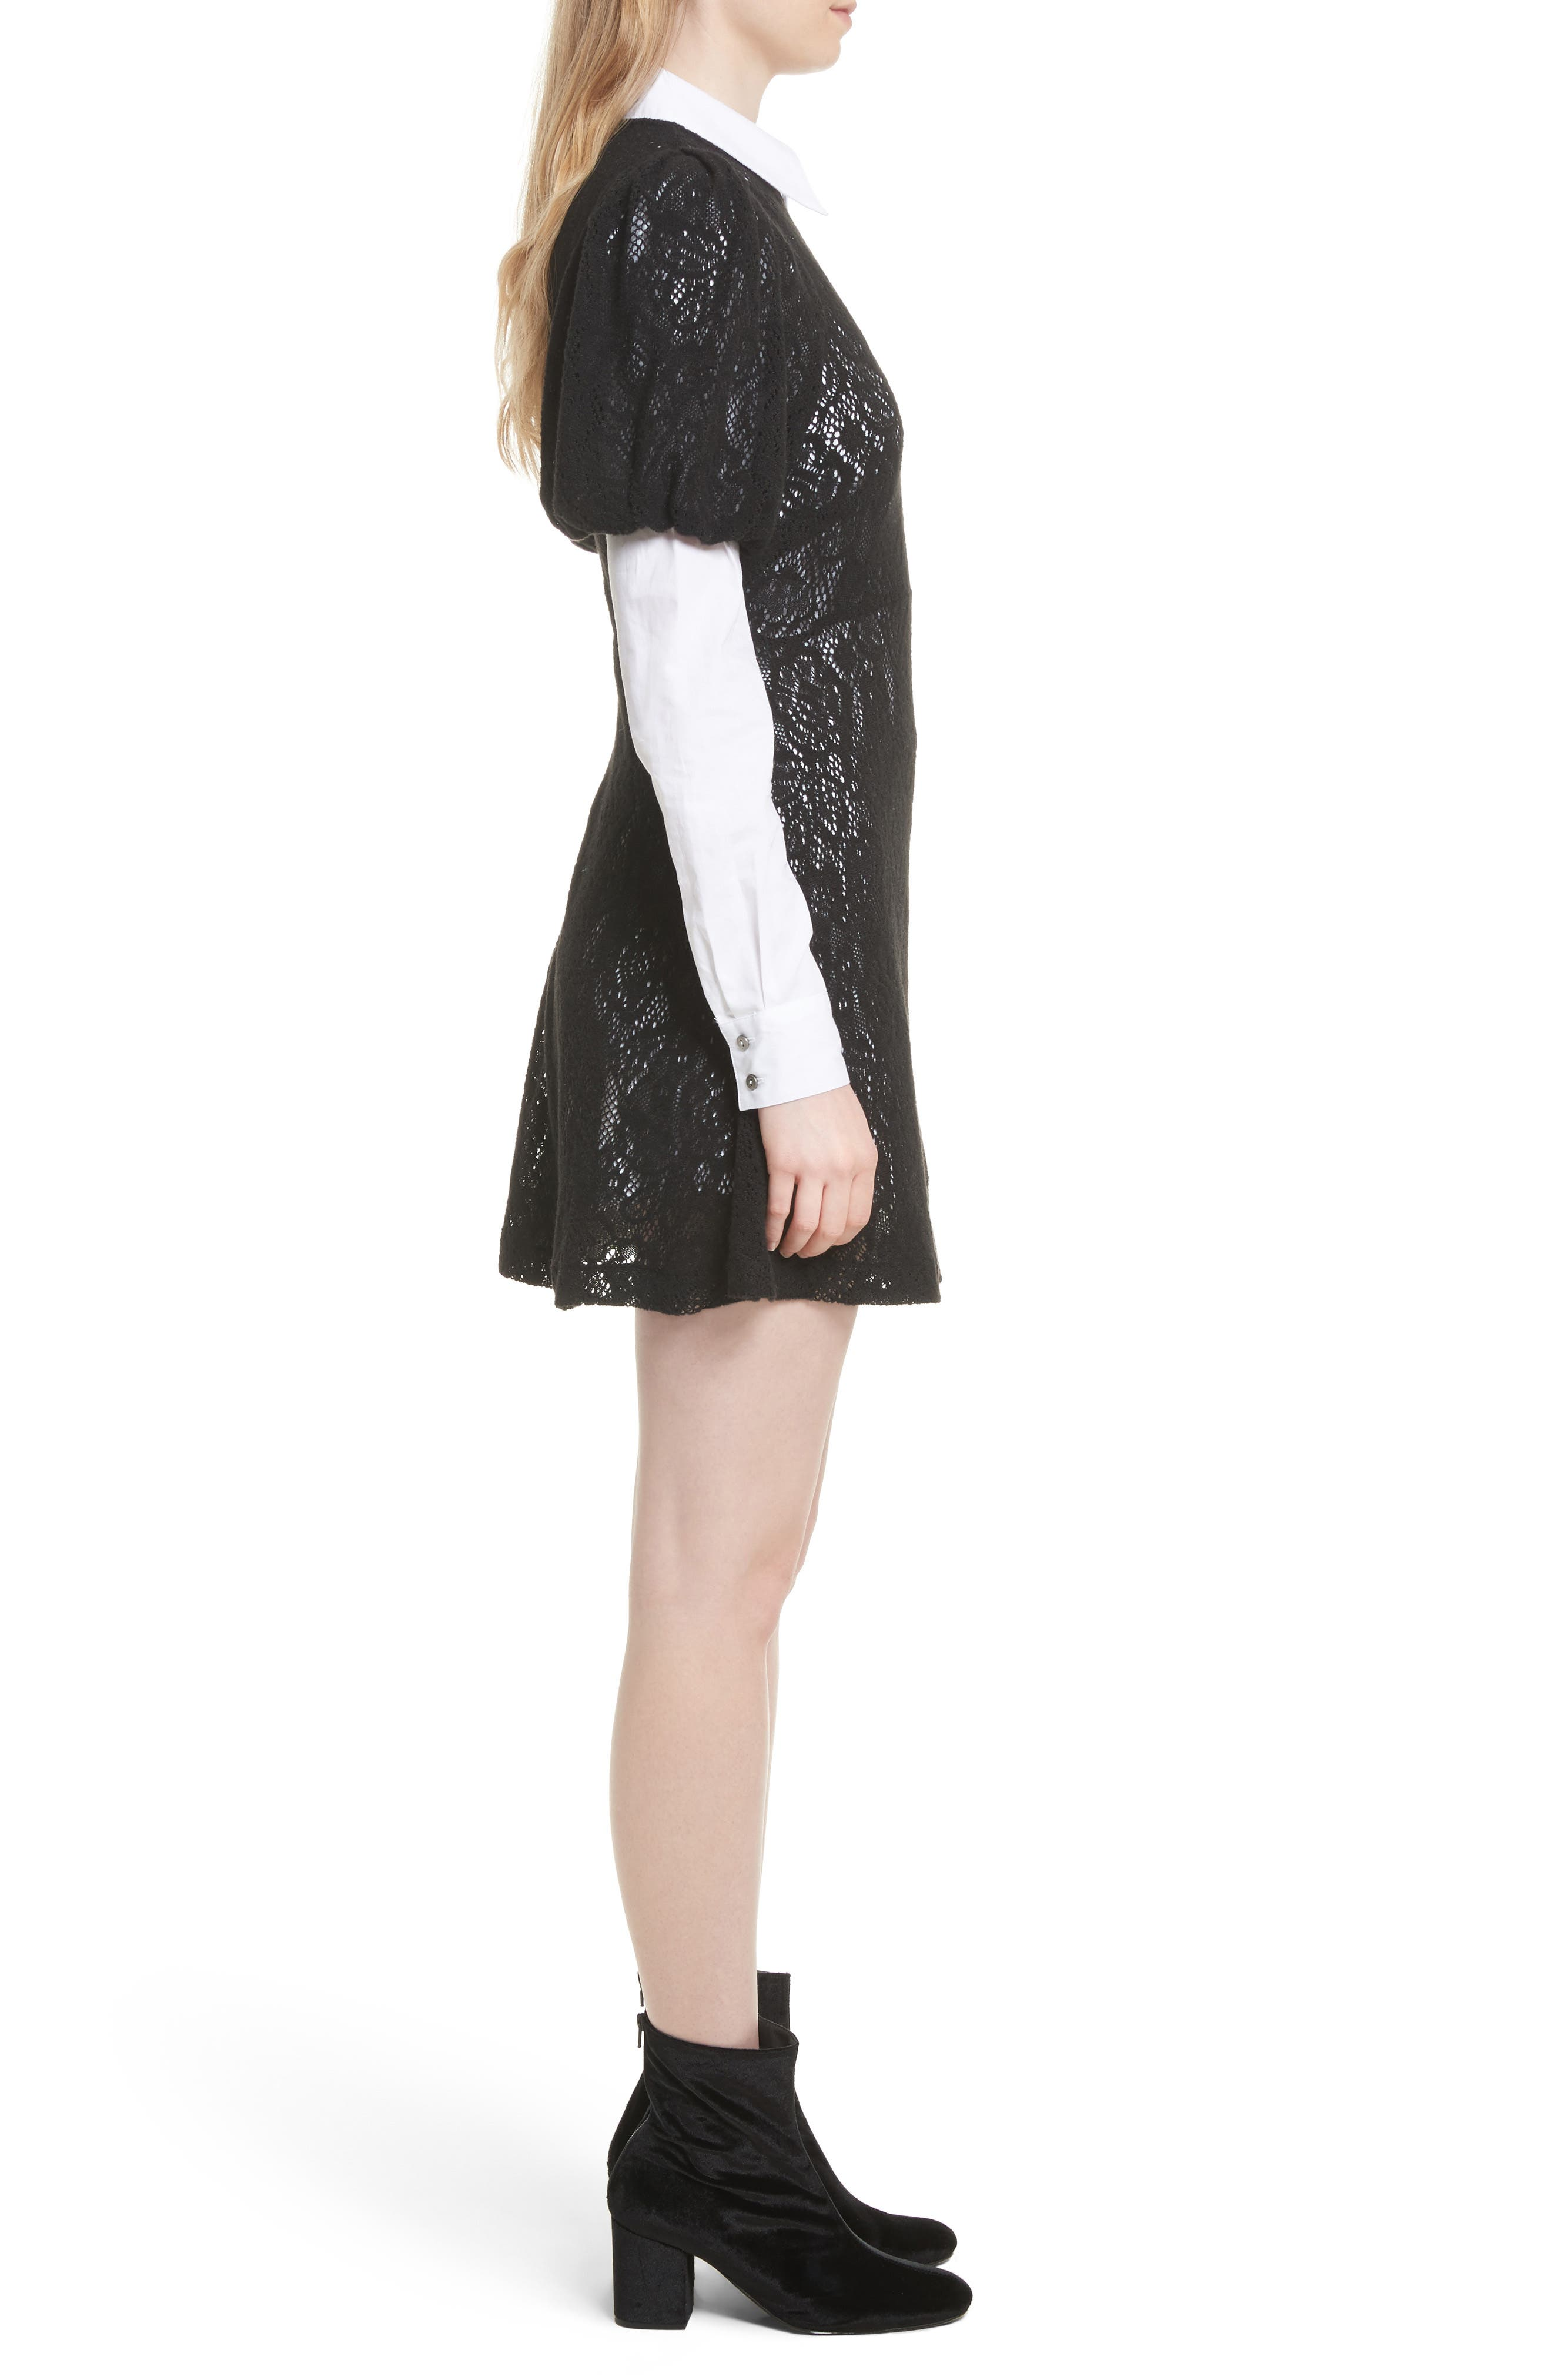 Pretty Princess Dress Shirtdress with Lace Overlay,                             Alternate thumbnail 3, color,                             019